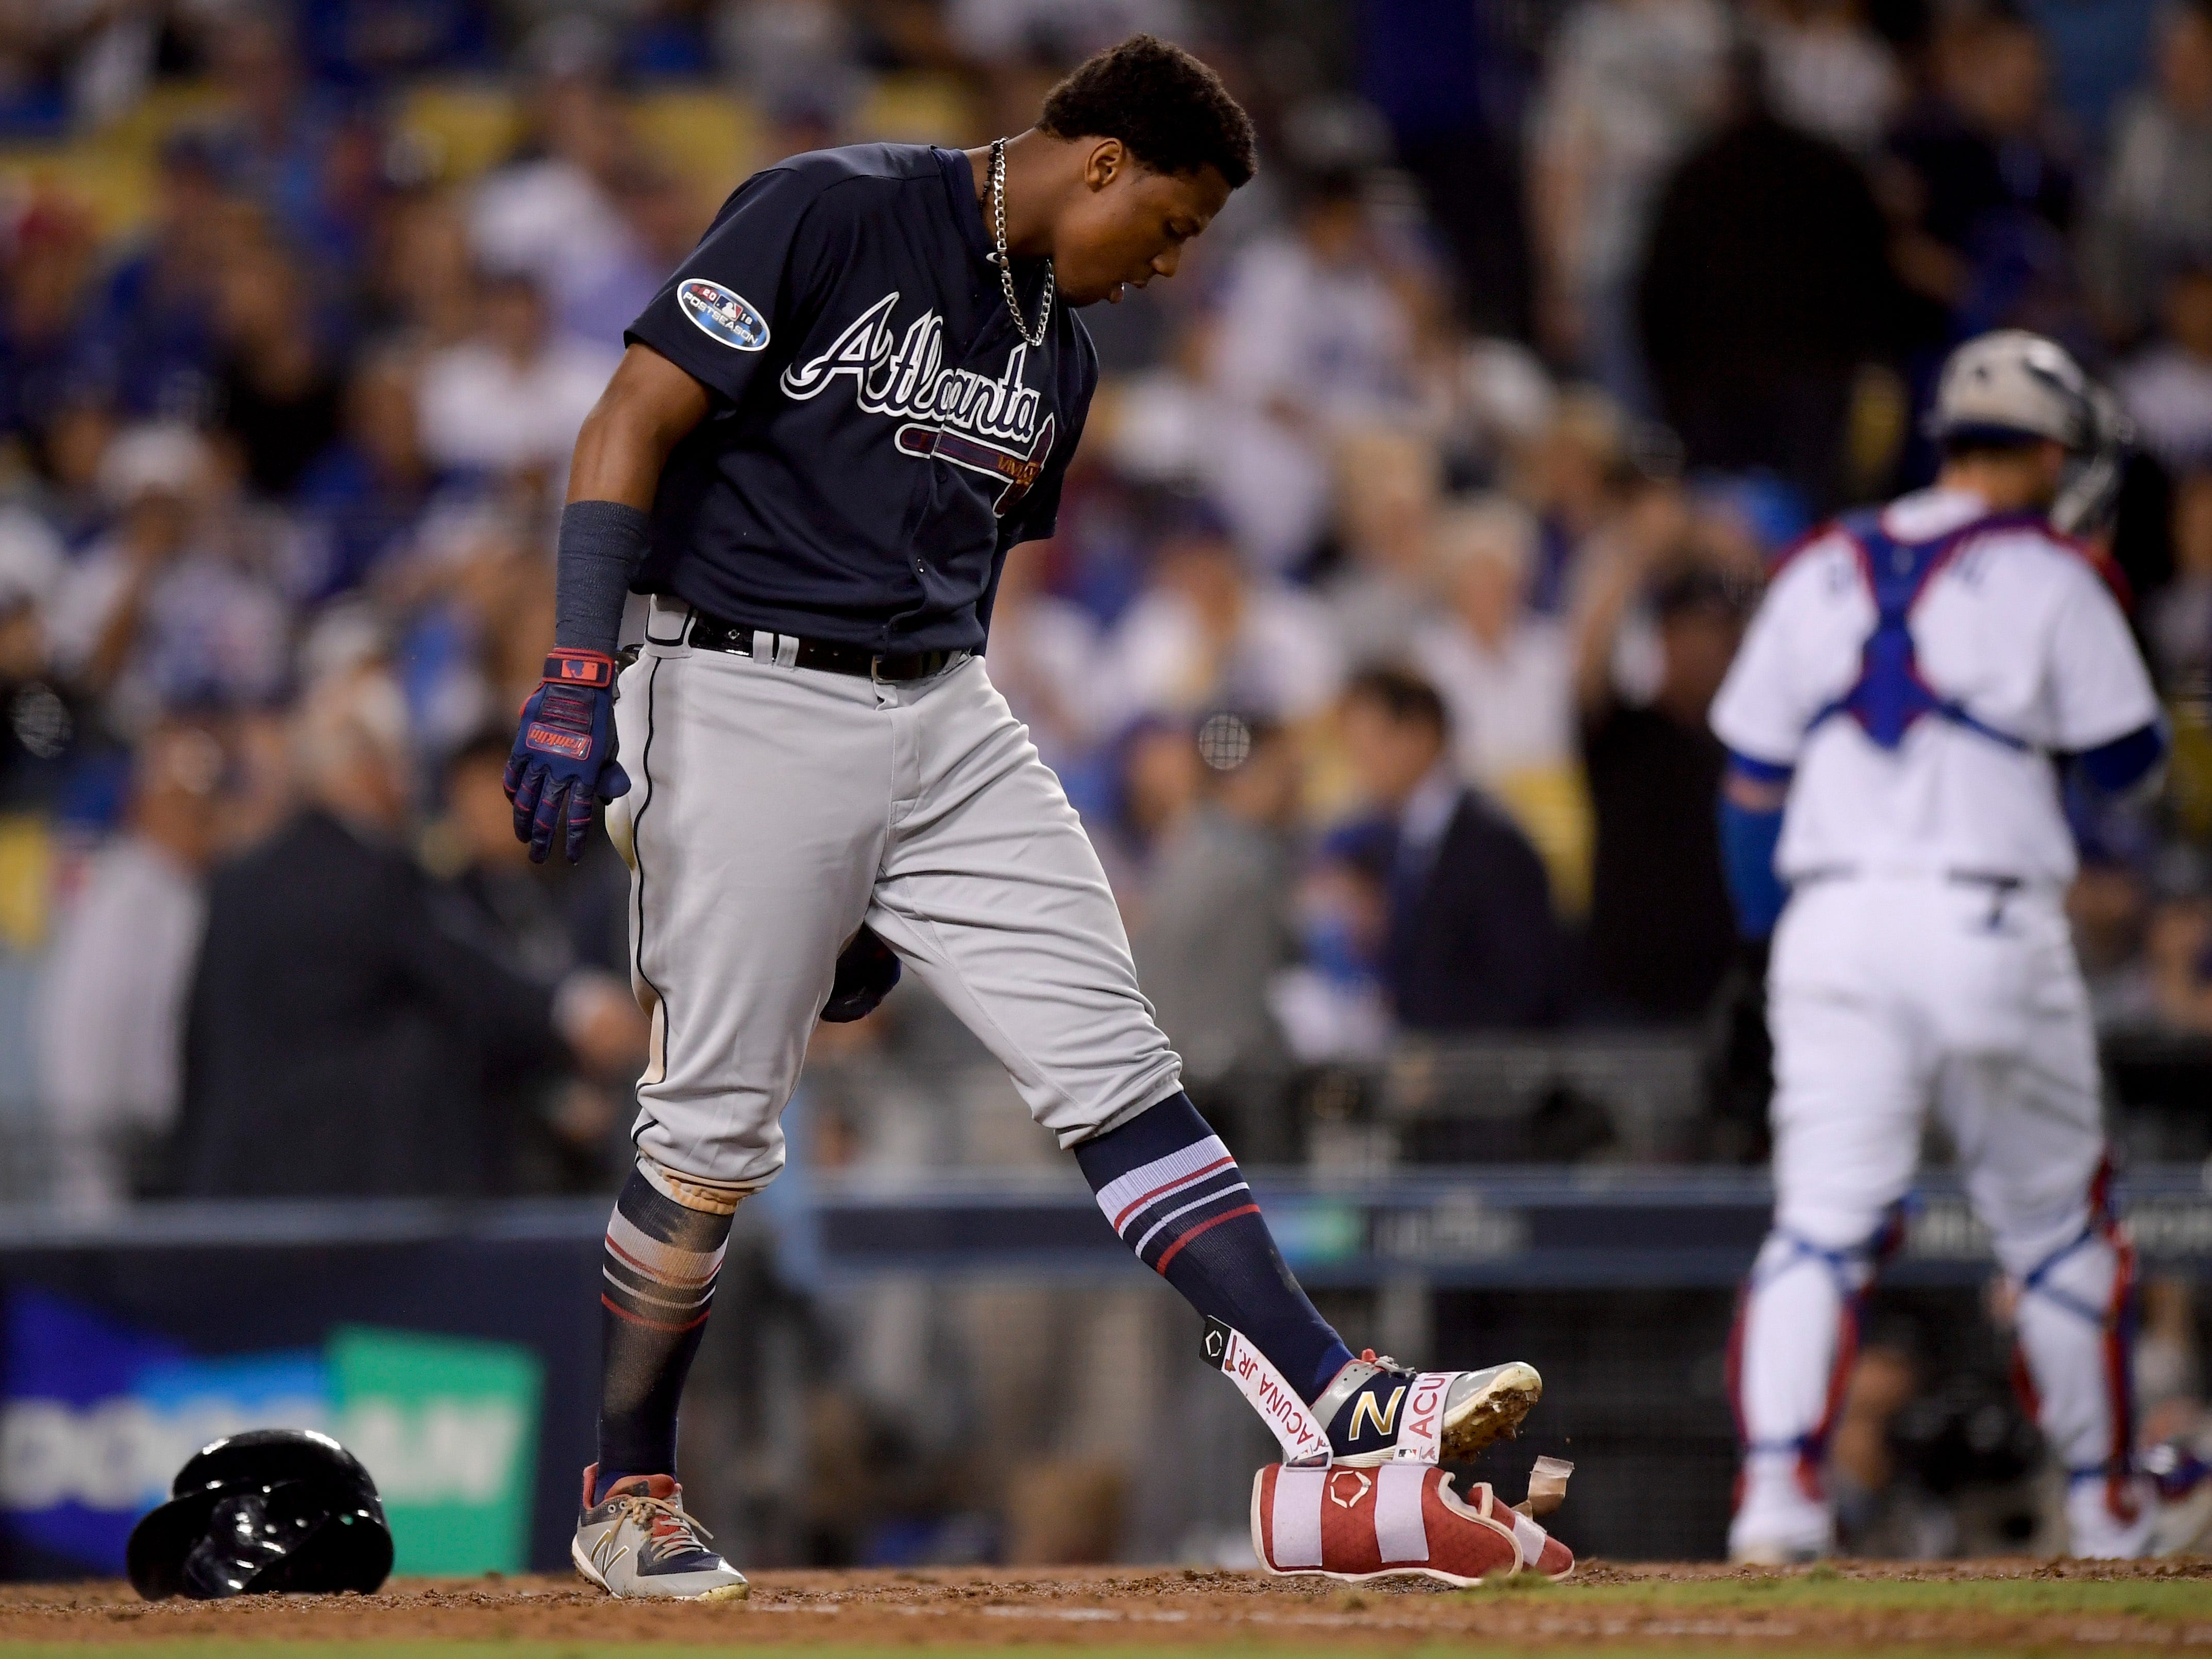 NLDS Game 1: Braves' Ronald Acuna Jr. reacts after striking out in the eighth inning.